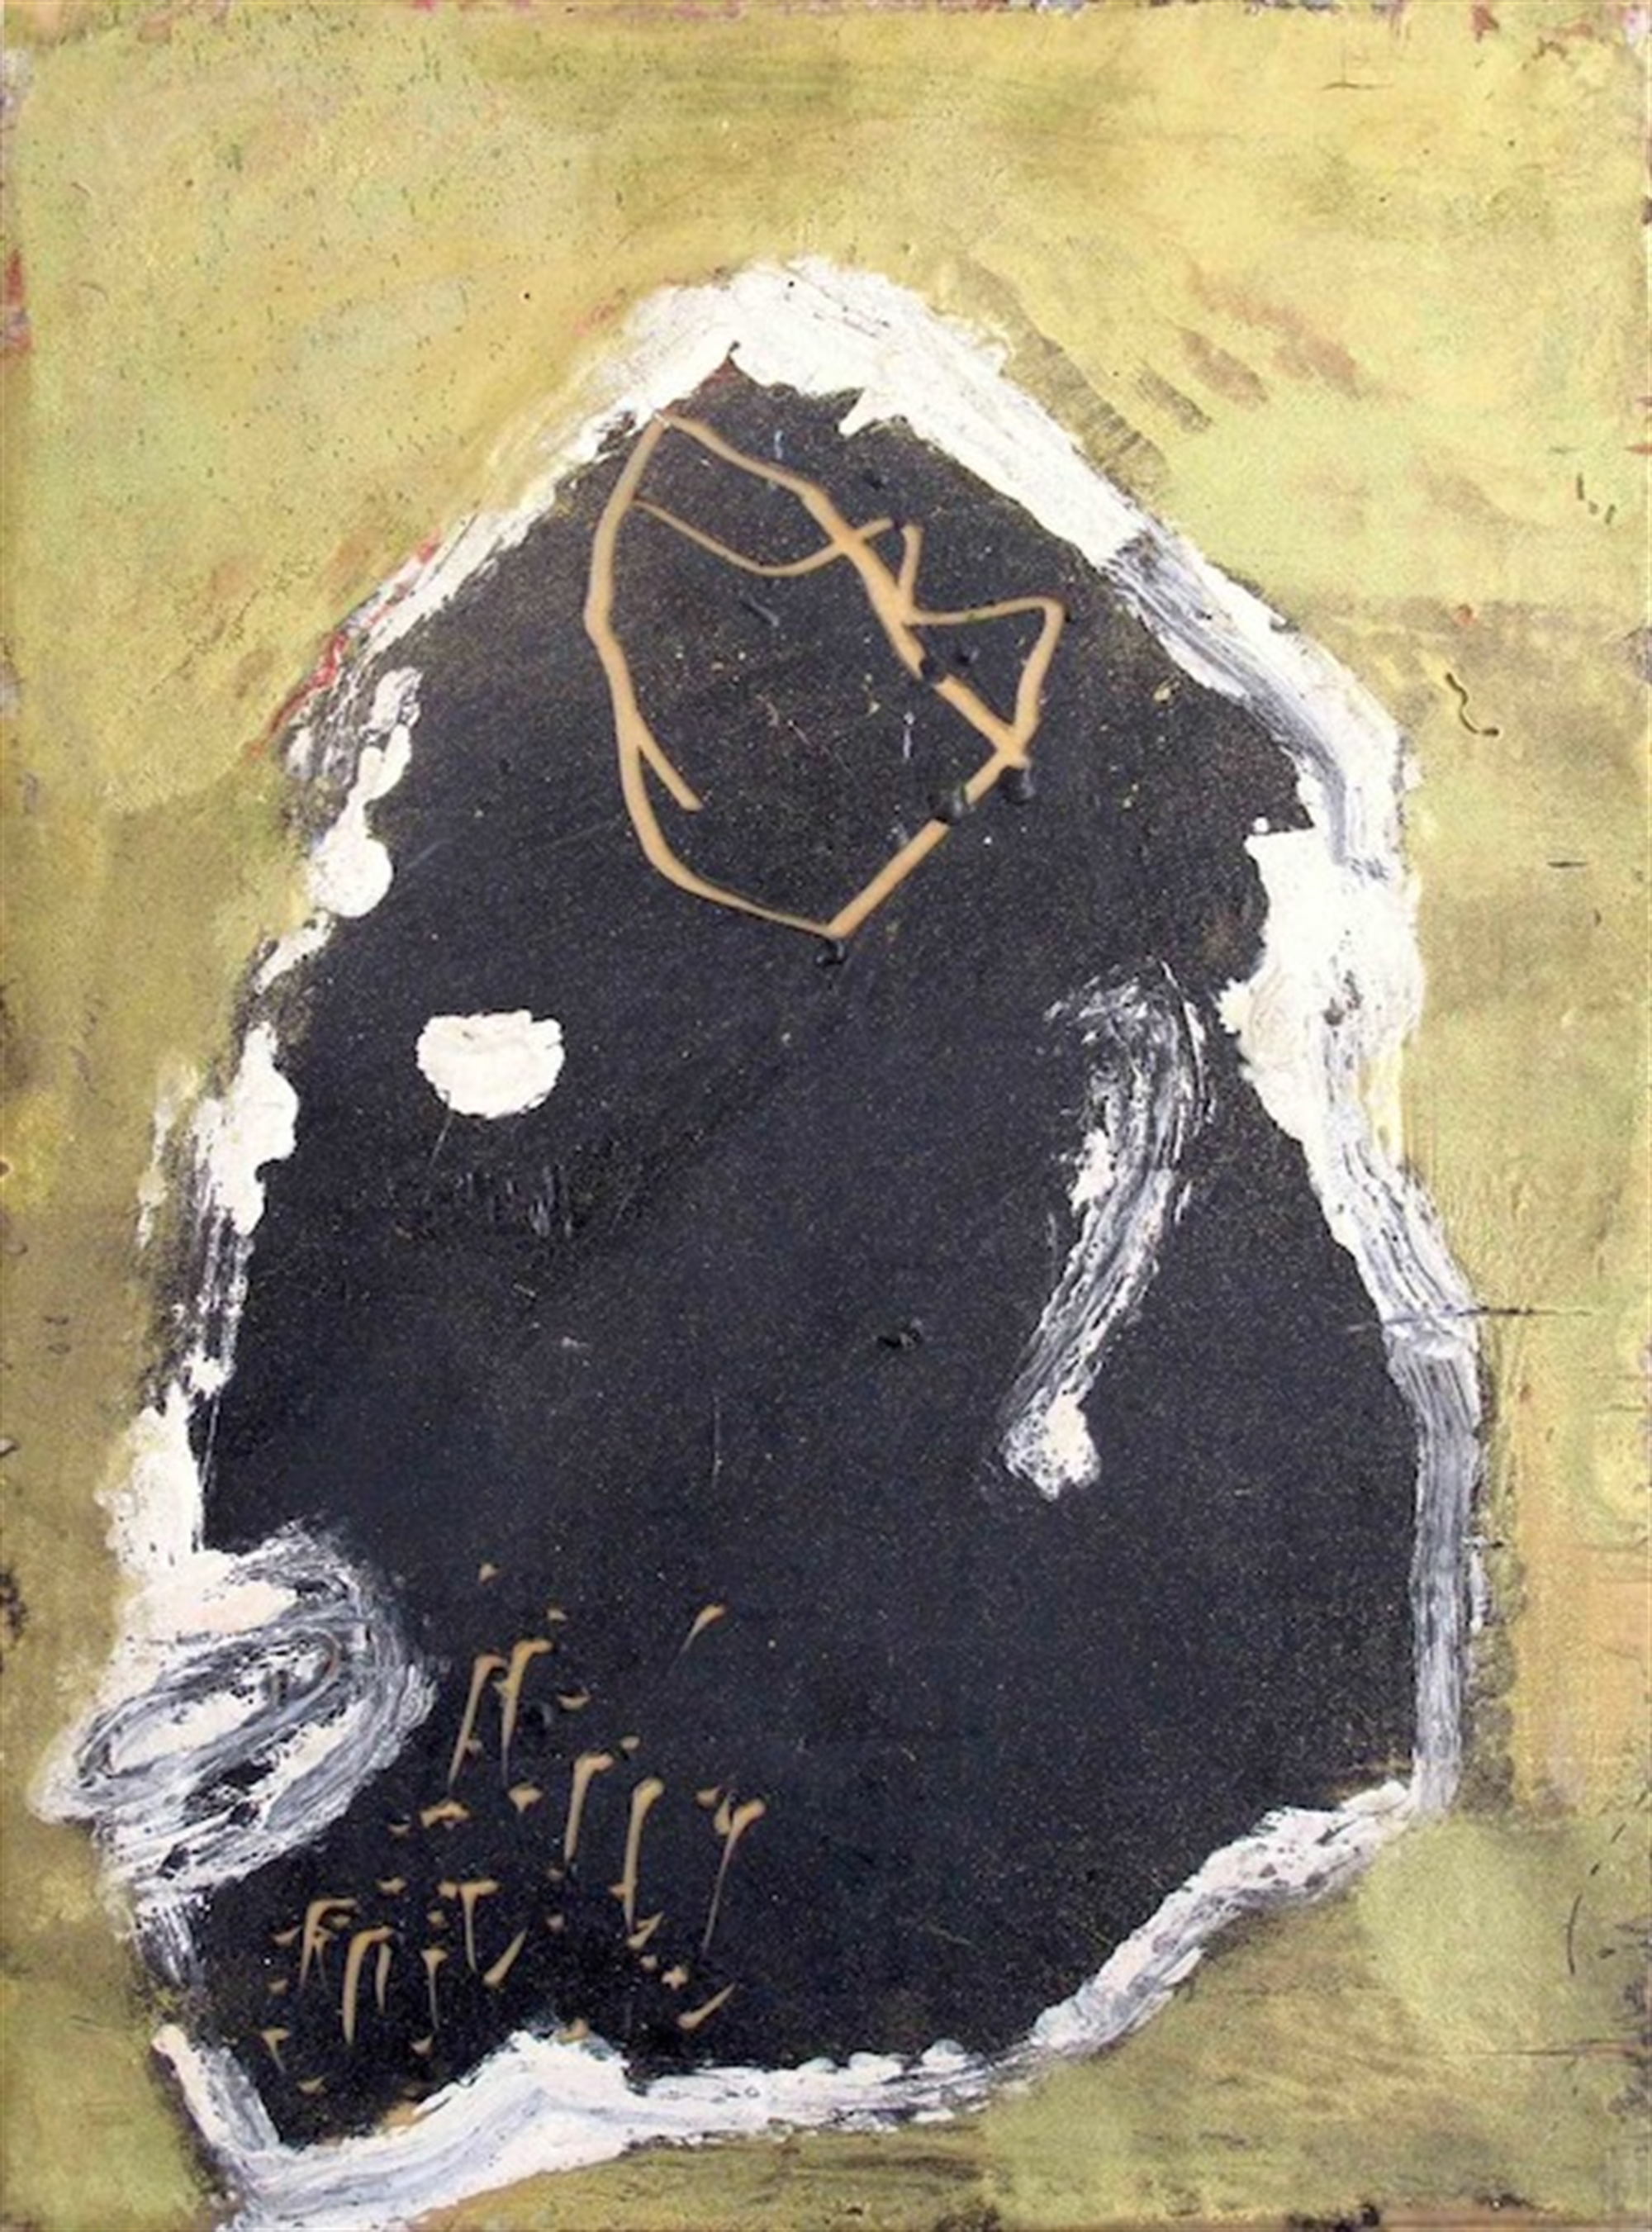 Portrait in Black on Gold by James Havard